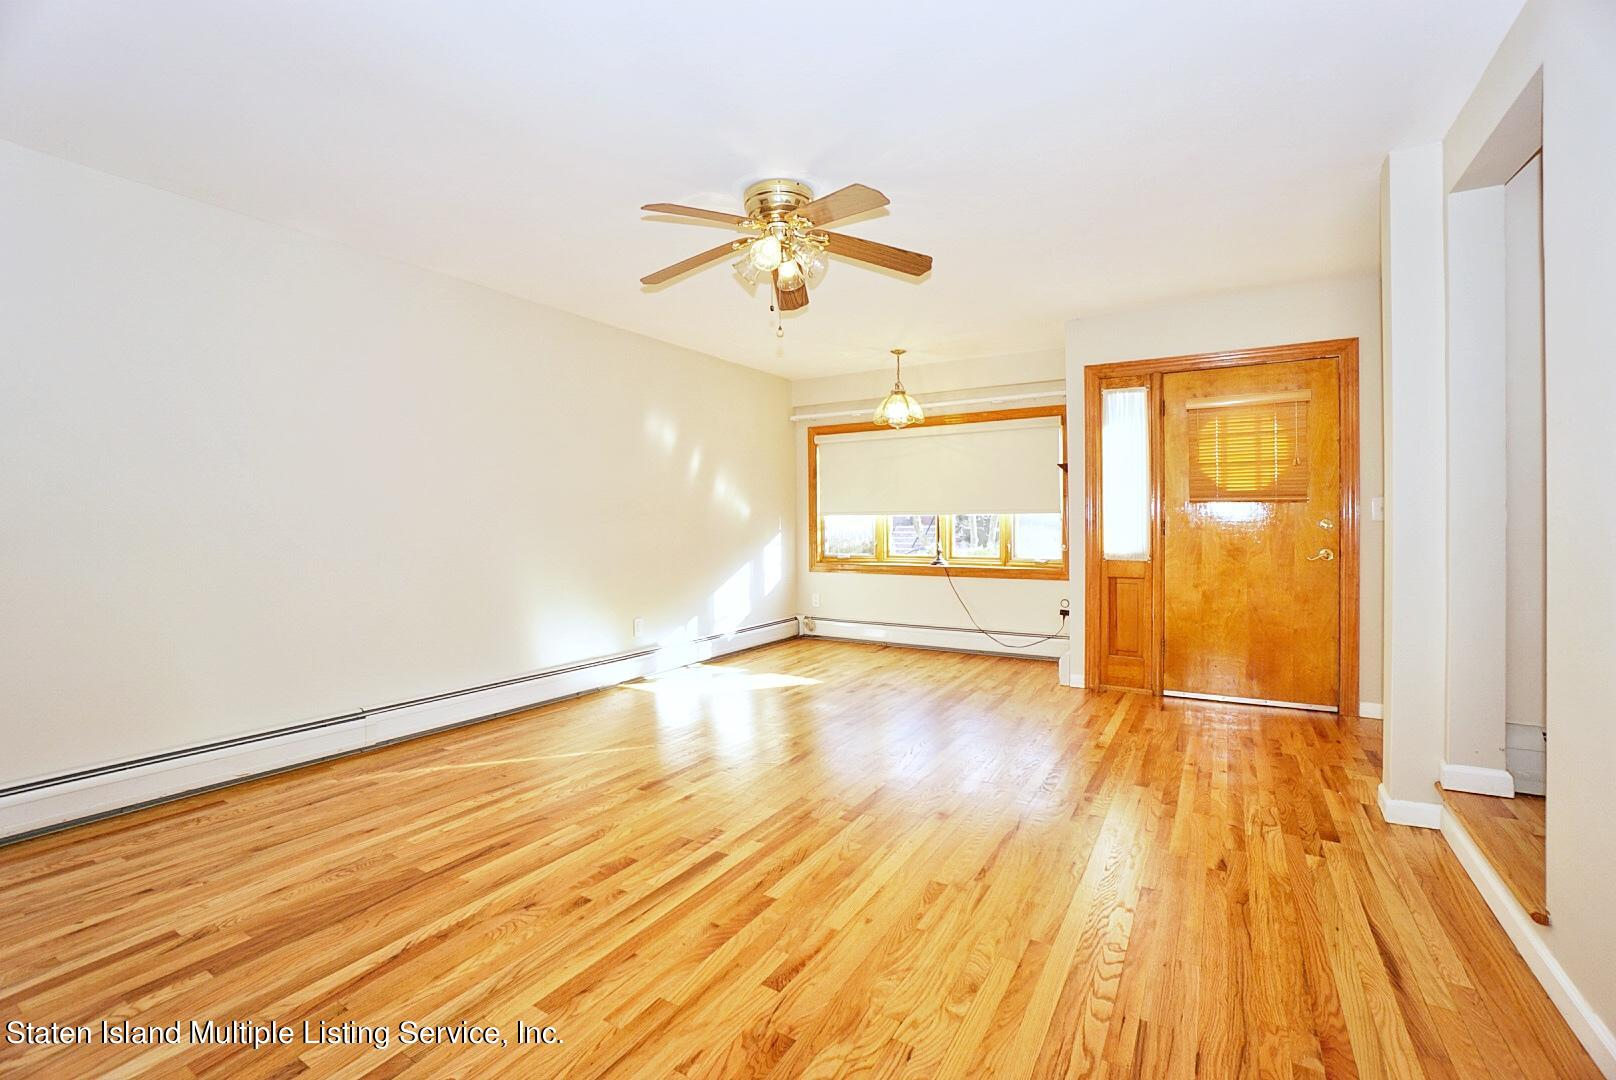 Single Family - Detached 97 Knox Place  Staten Island, NY 10314, MLS-1143147-9